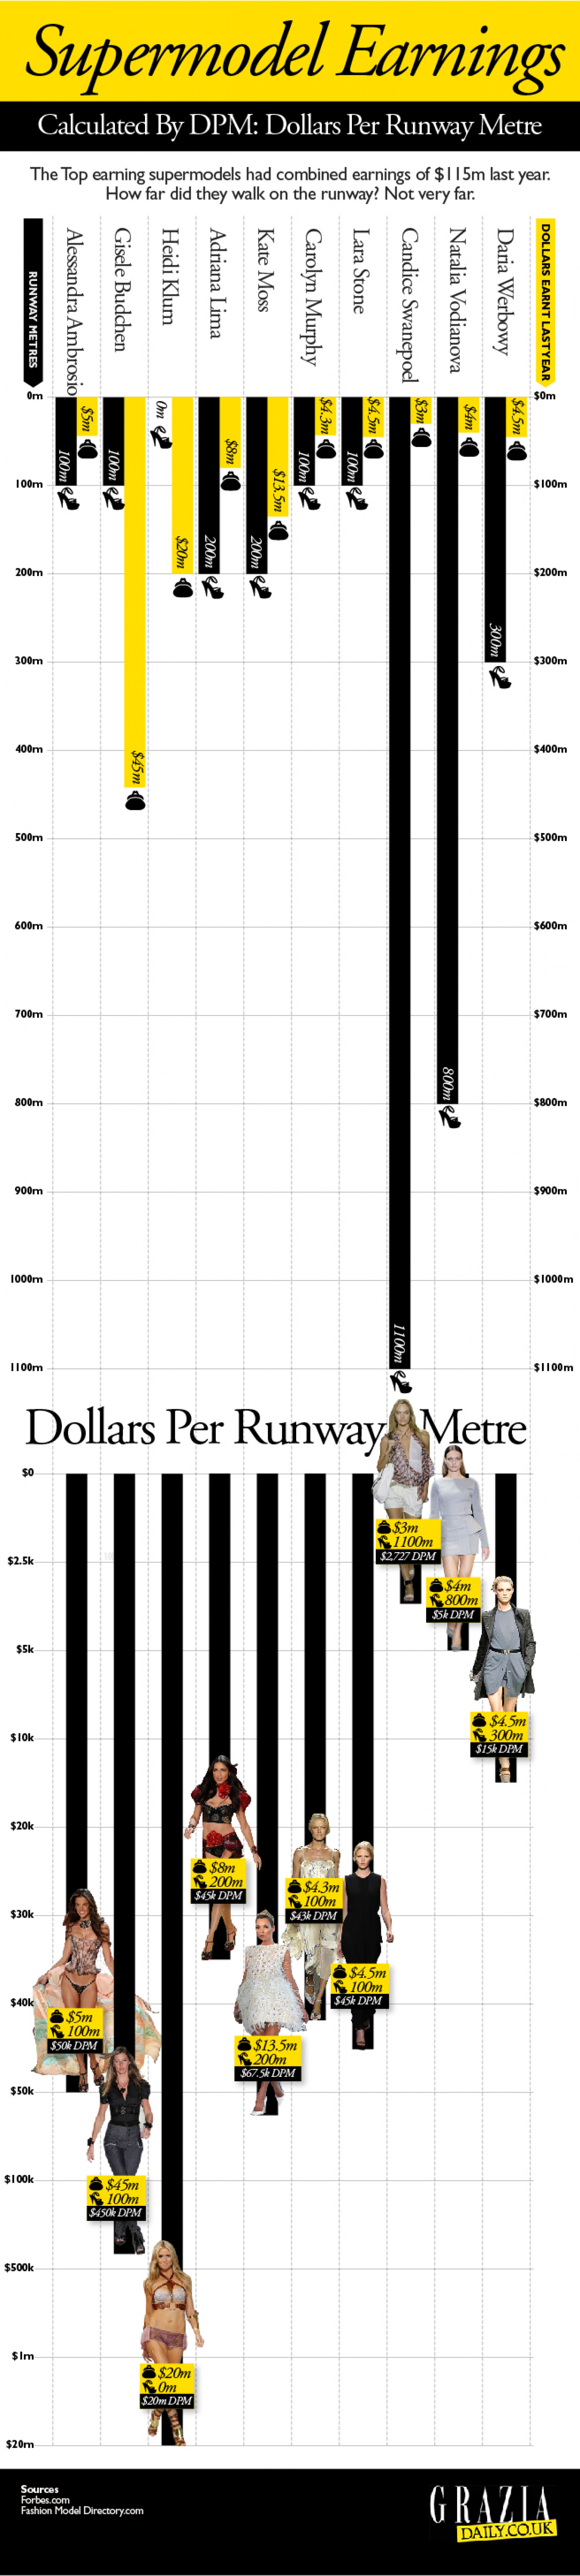 Supermodel Earnings Infographic